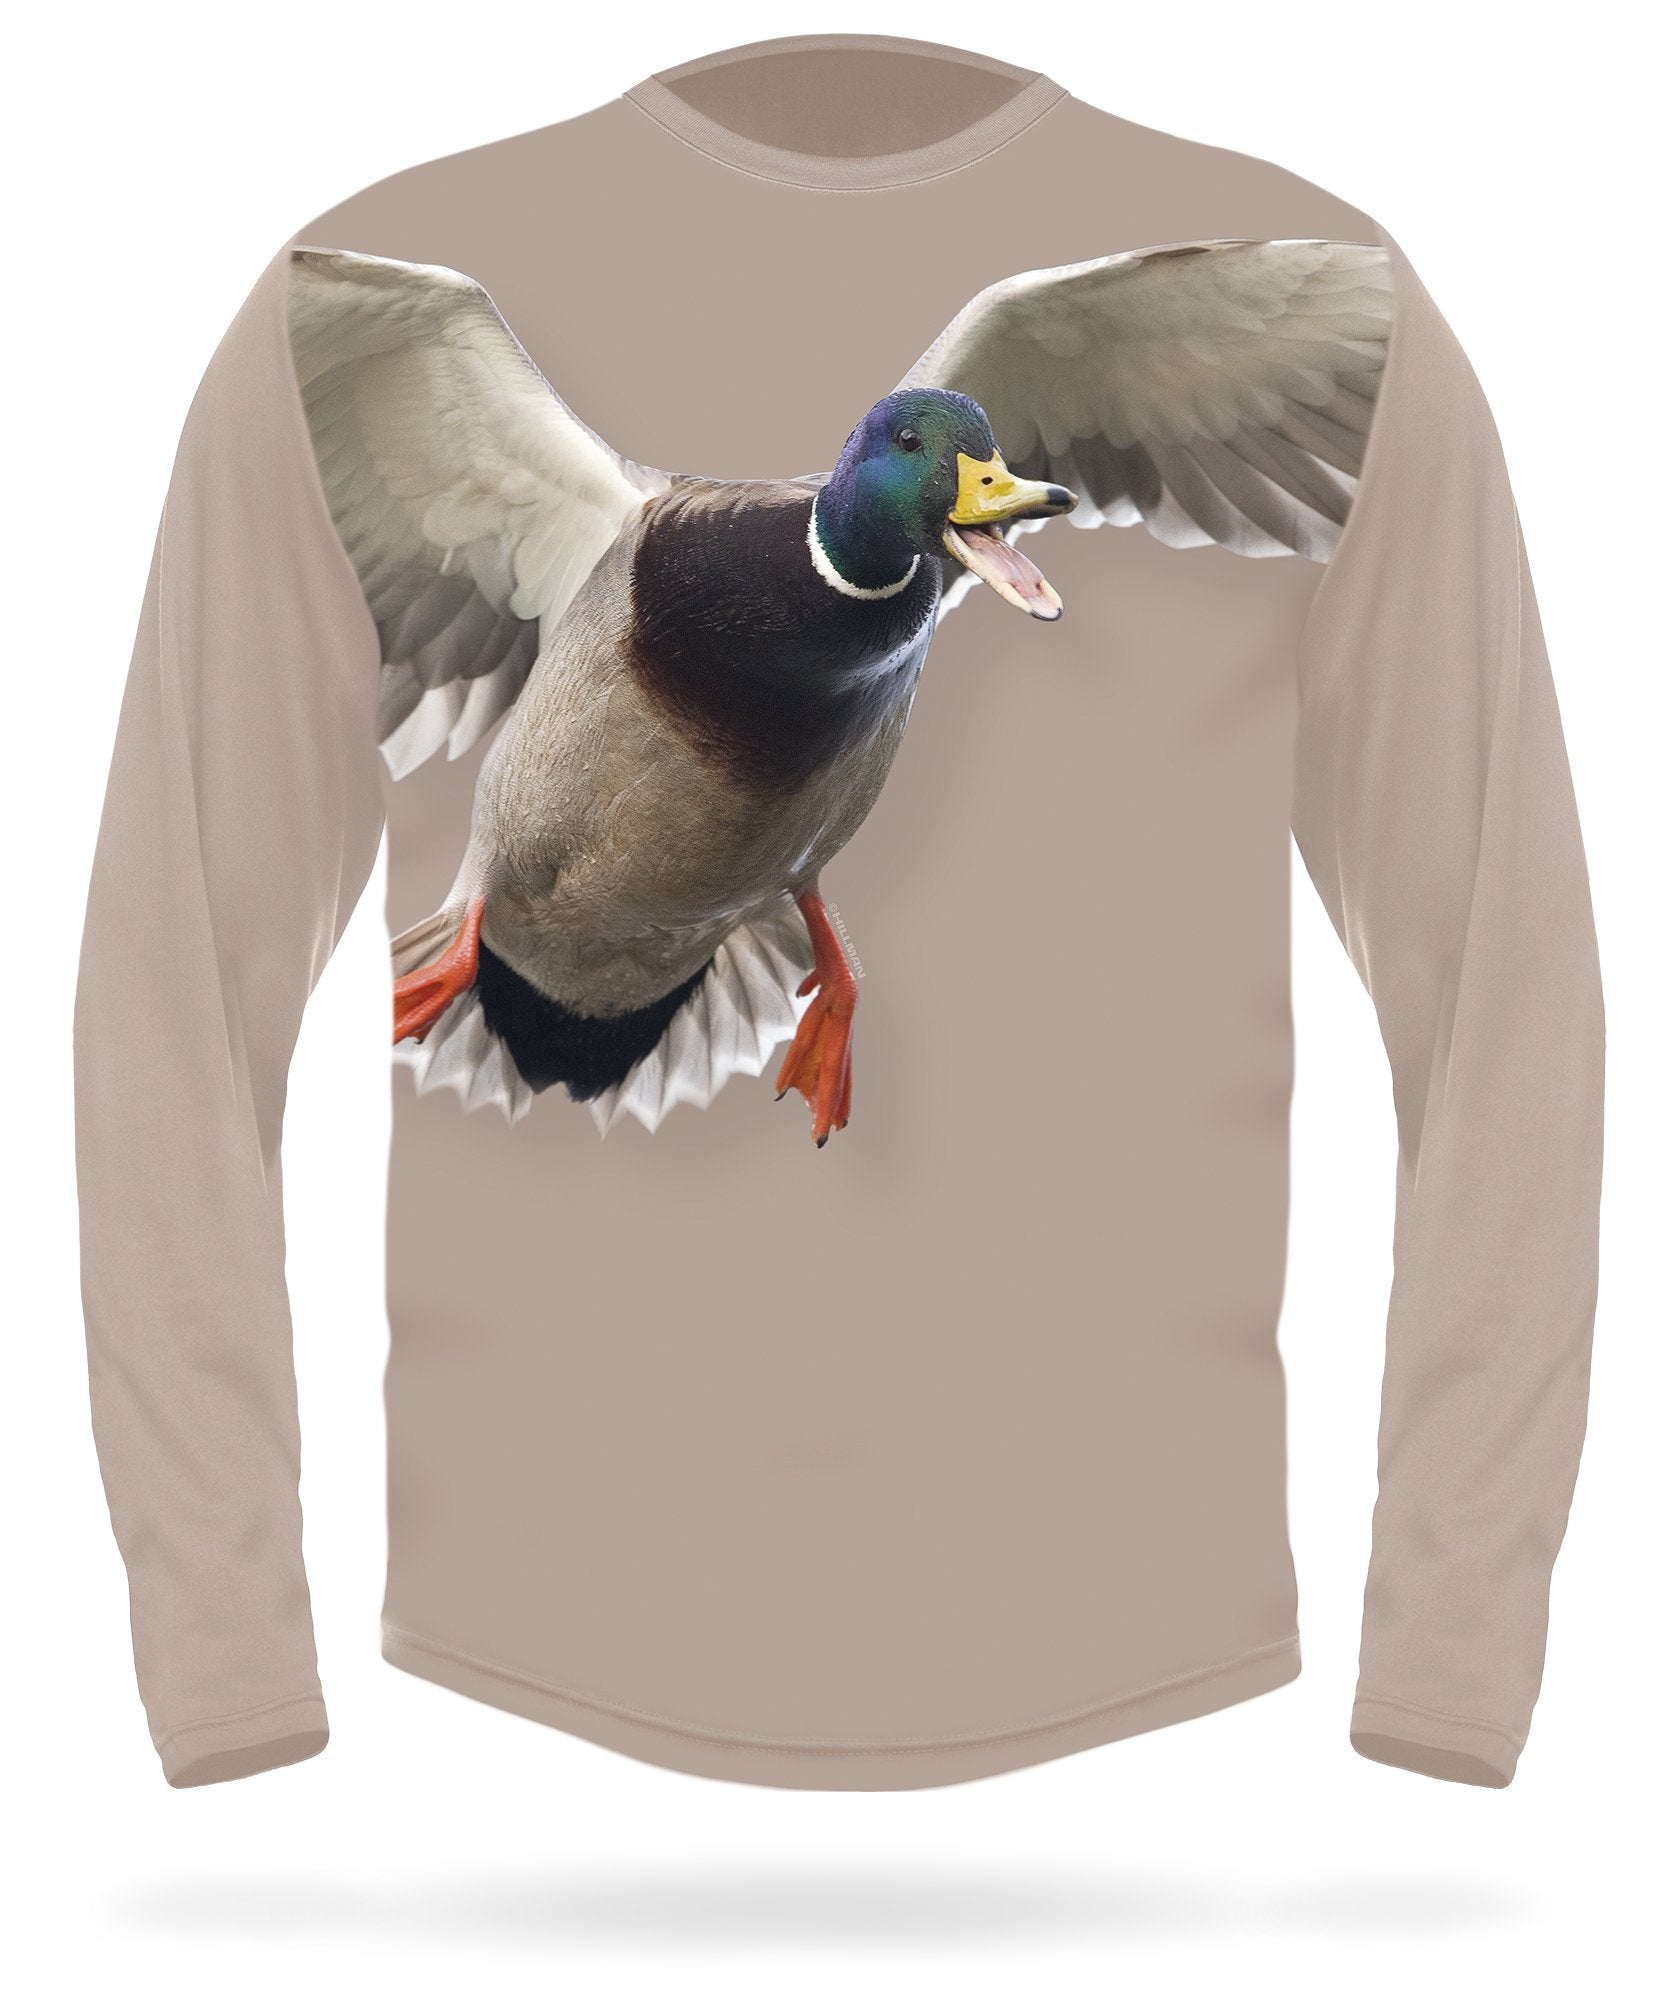 Mallard T-shirt - Calling Long Sleeve - HILLMAN® hunting gear